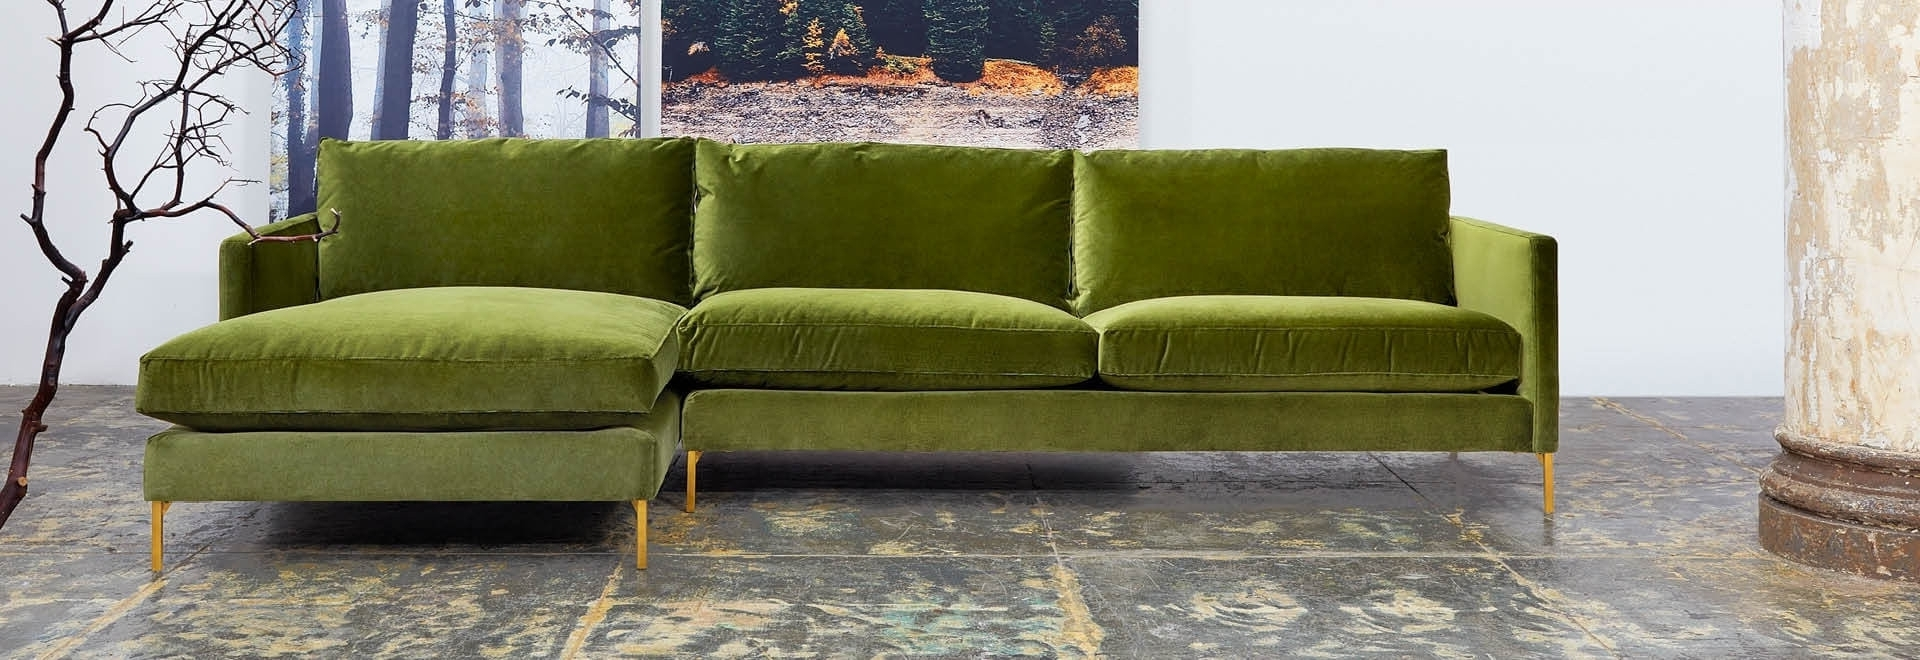 Modern Sectional Sofas For Nyc Apartments At Abc Home With Regard To Well Liked Sectional Sofas In Stock (View 17 of 20)